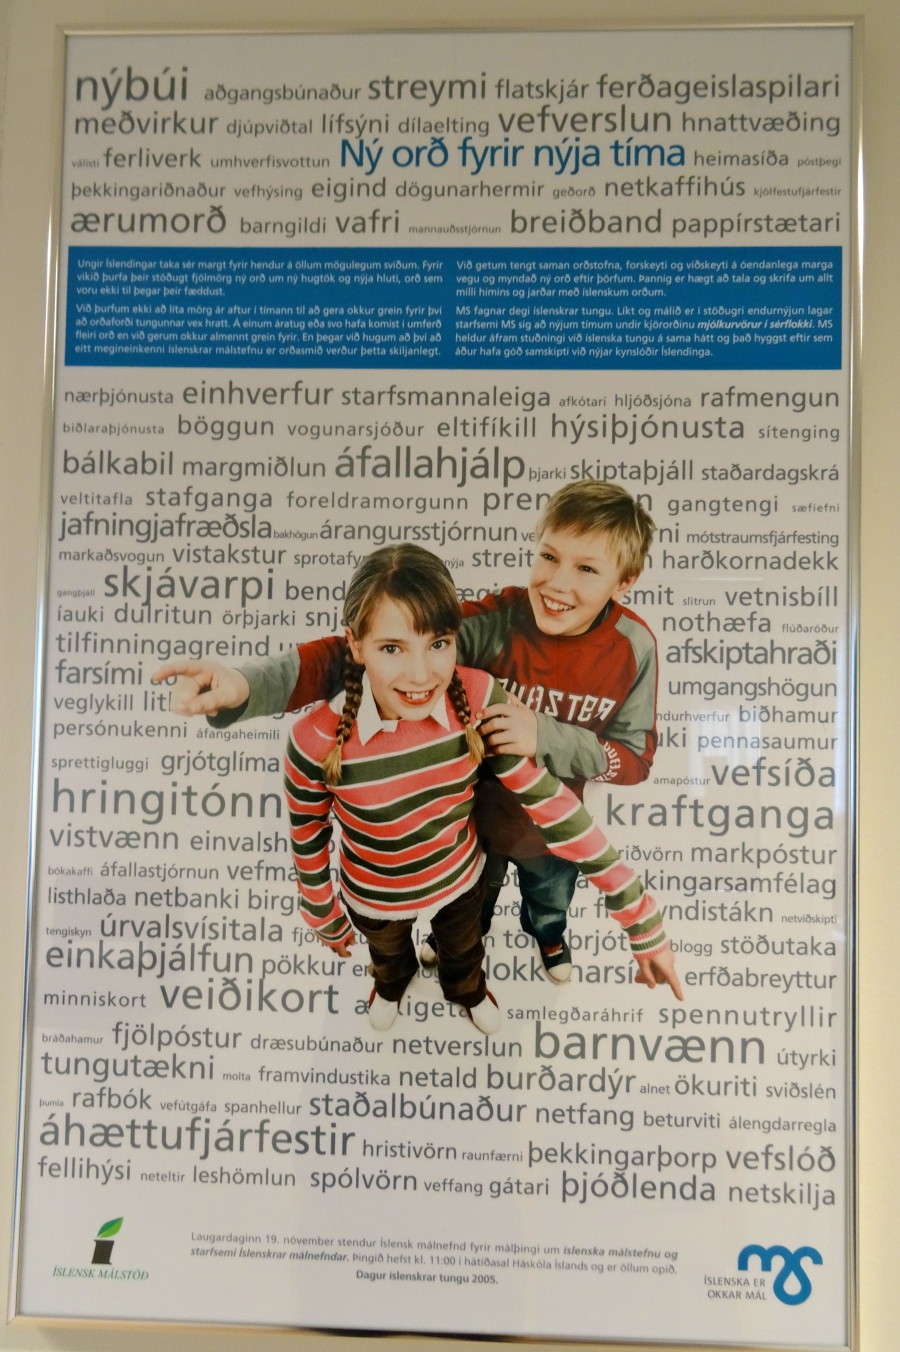 A poster promoting the Icelandic language.